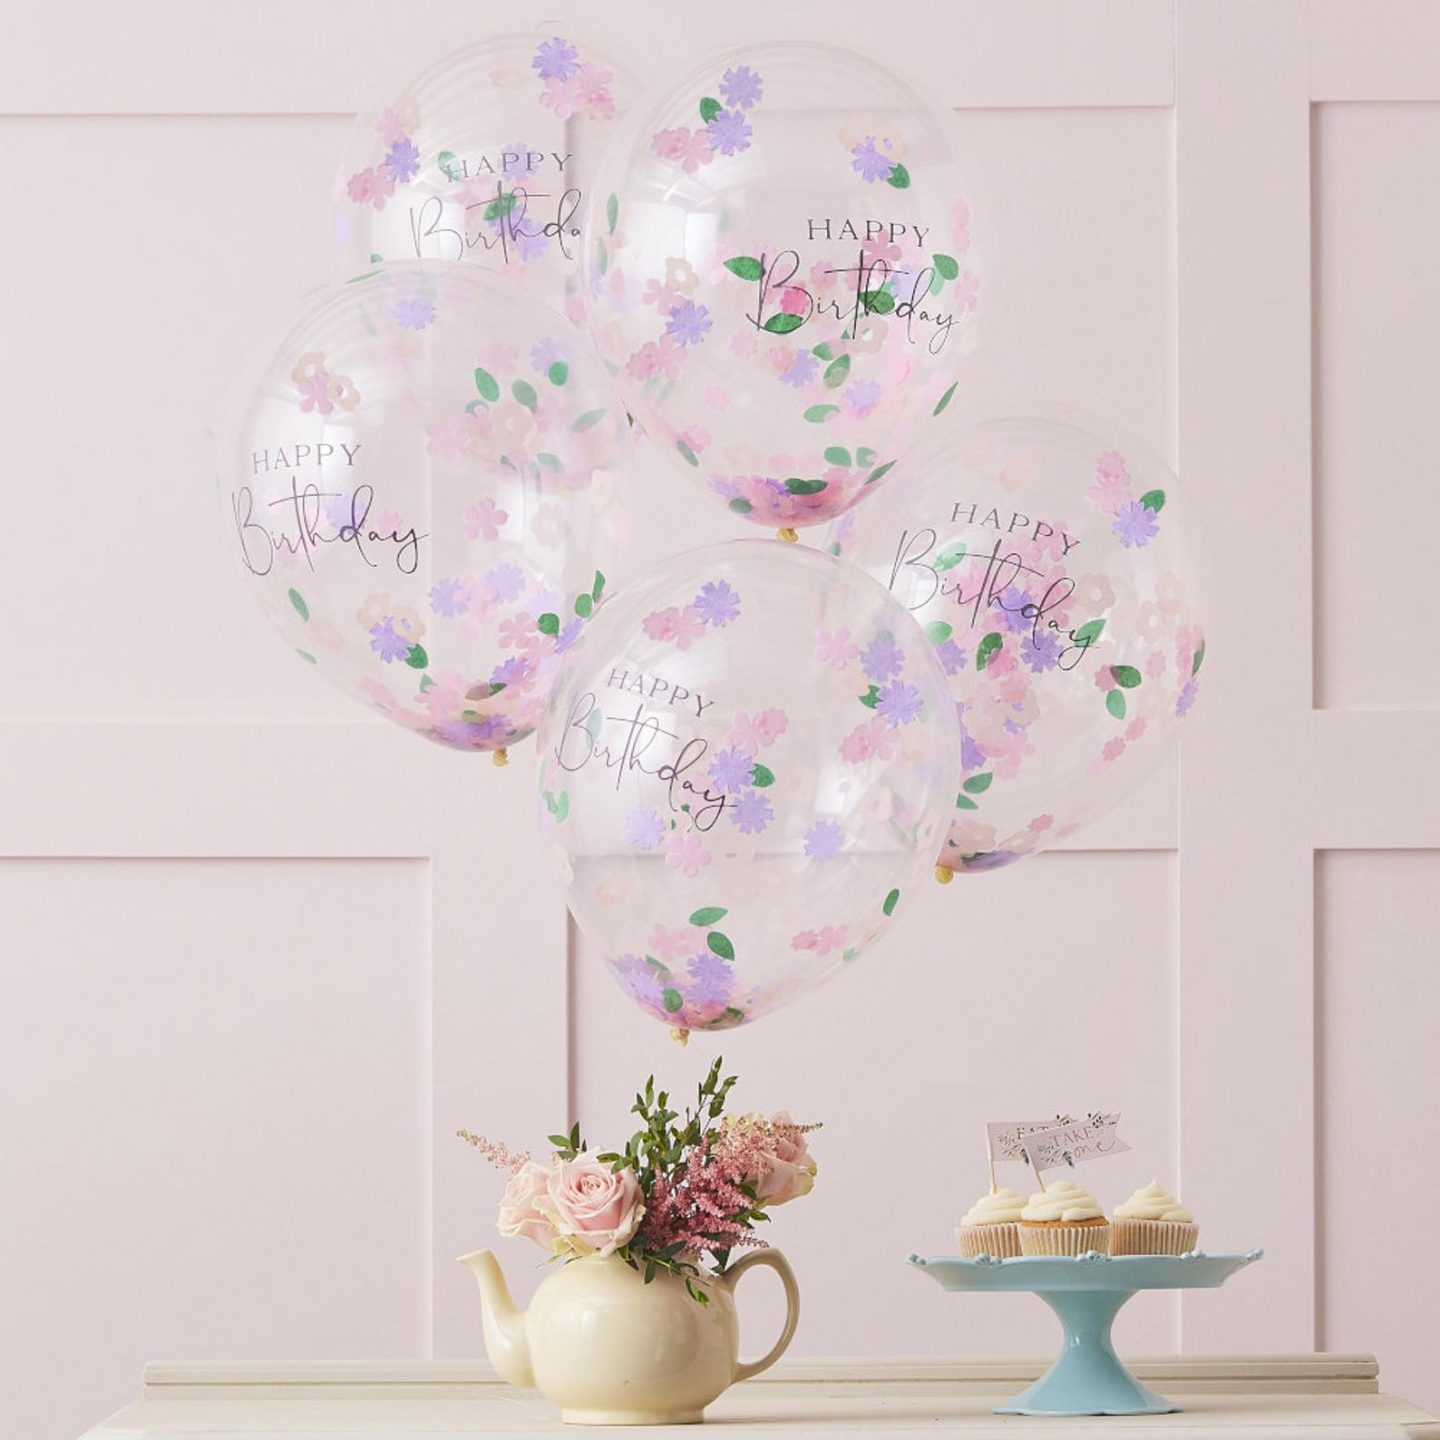 Happy birthday balloons with flower confetti